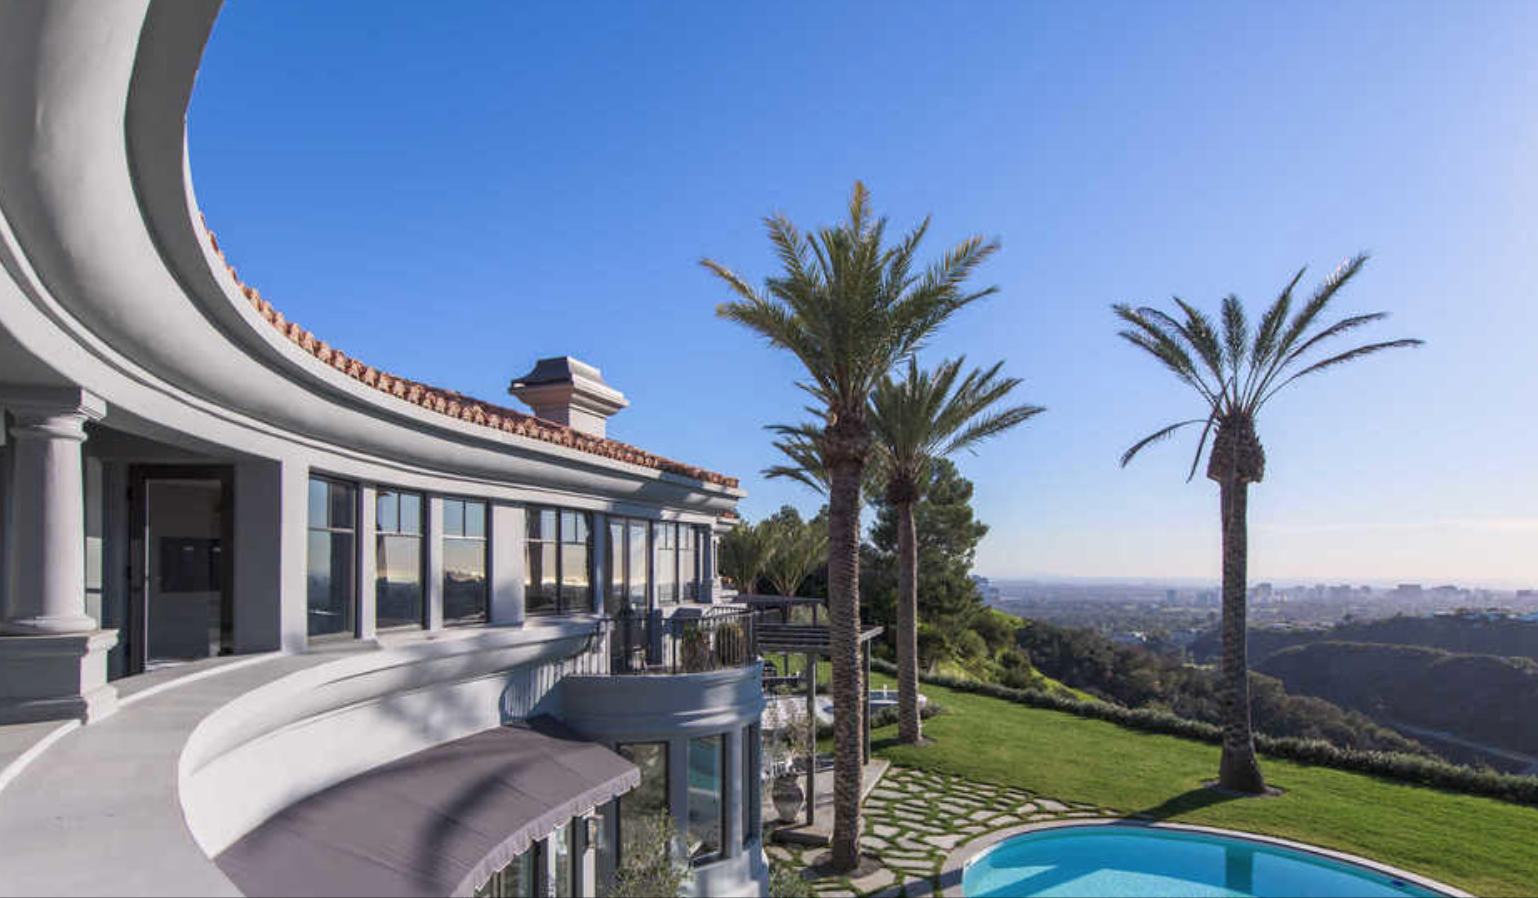 kylie jenner u0027s beverly hills home is 35 million kylie jenner house